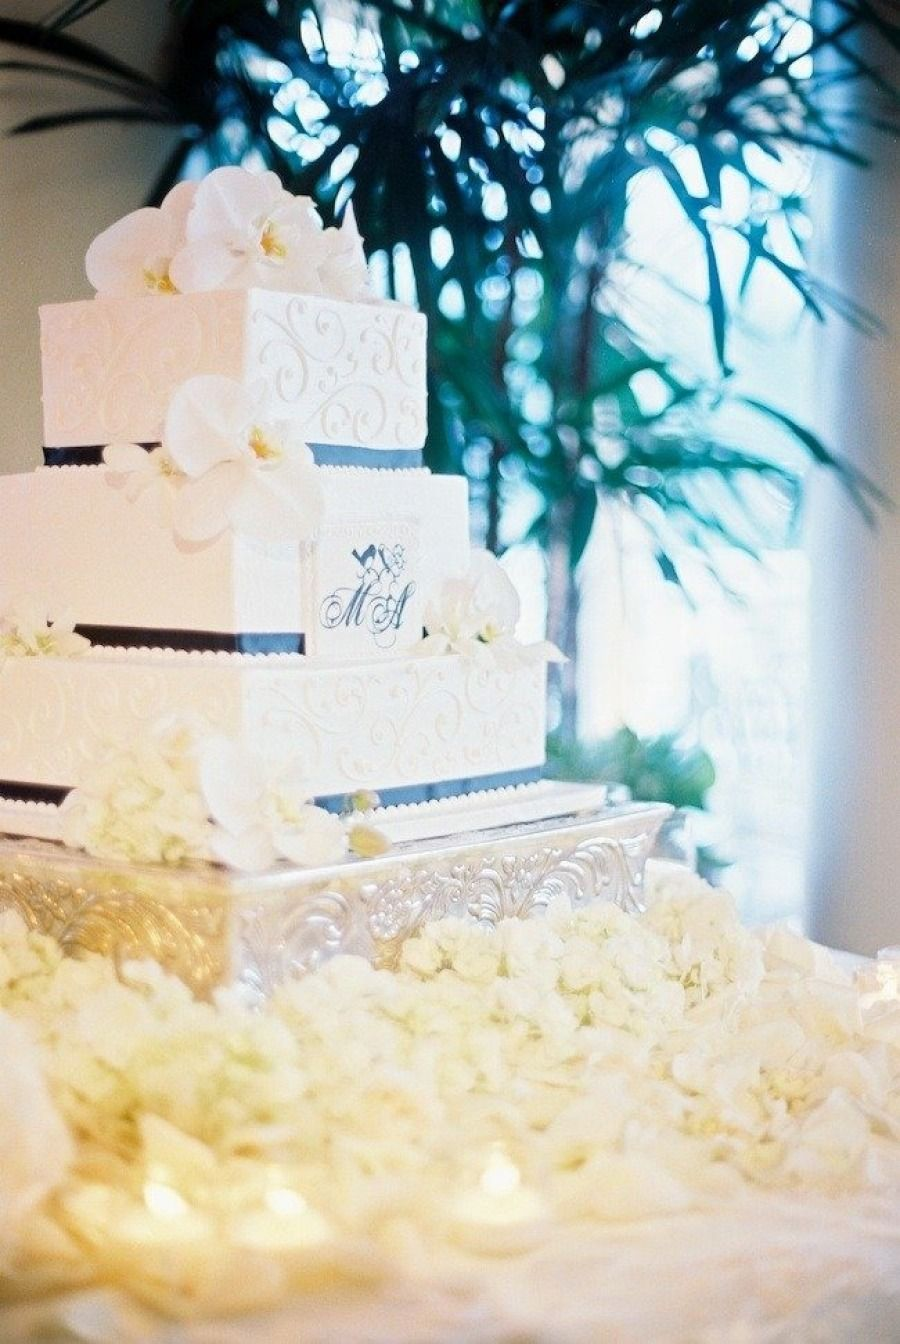 Wedding Cakes We Adore. To see more: http://www.modwedding.com/2014/01/03/wedding-cakes-we-adore/ #wedding #weddings #weddingcake #weddingcakes #cakes